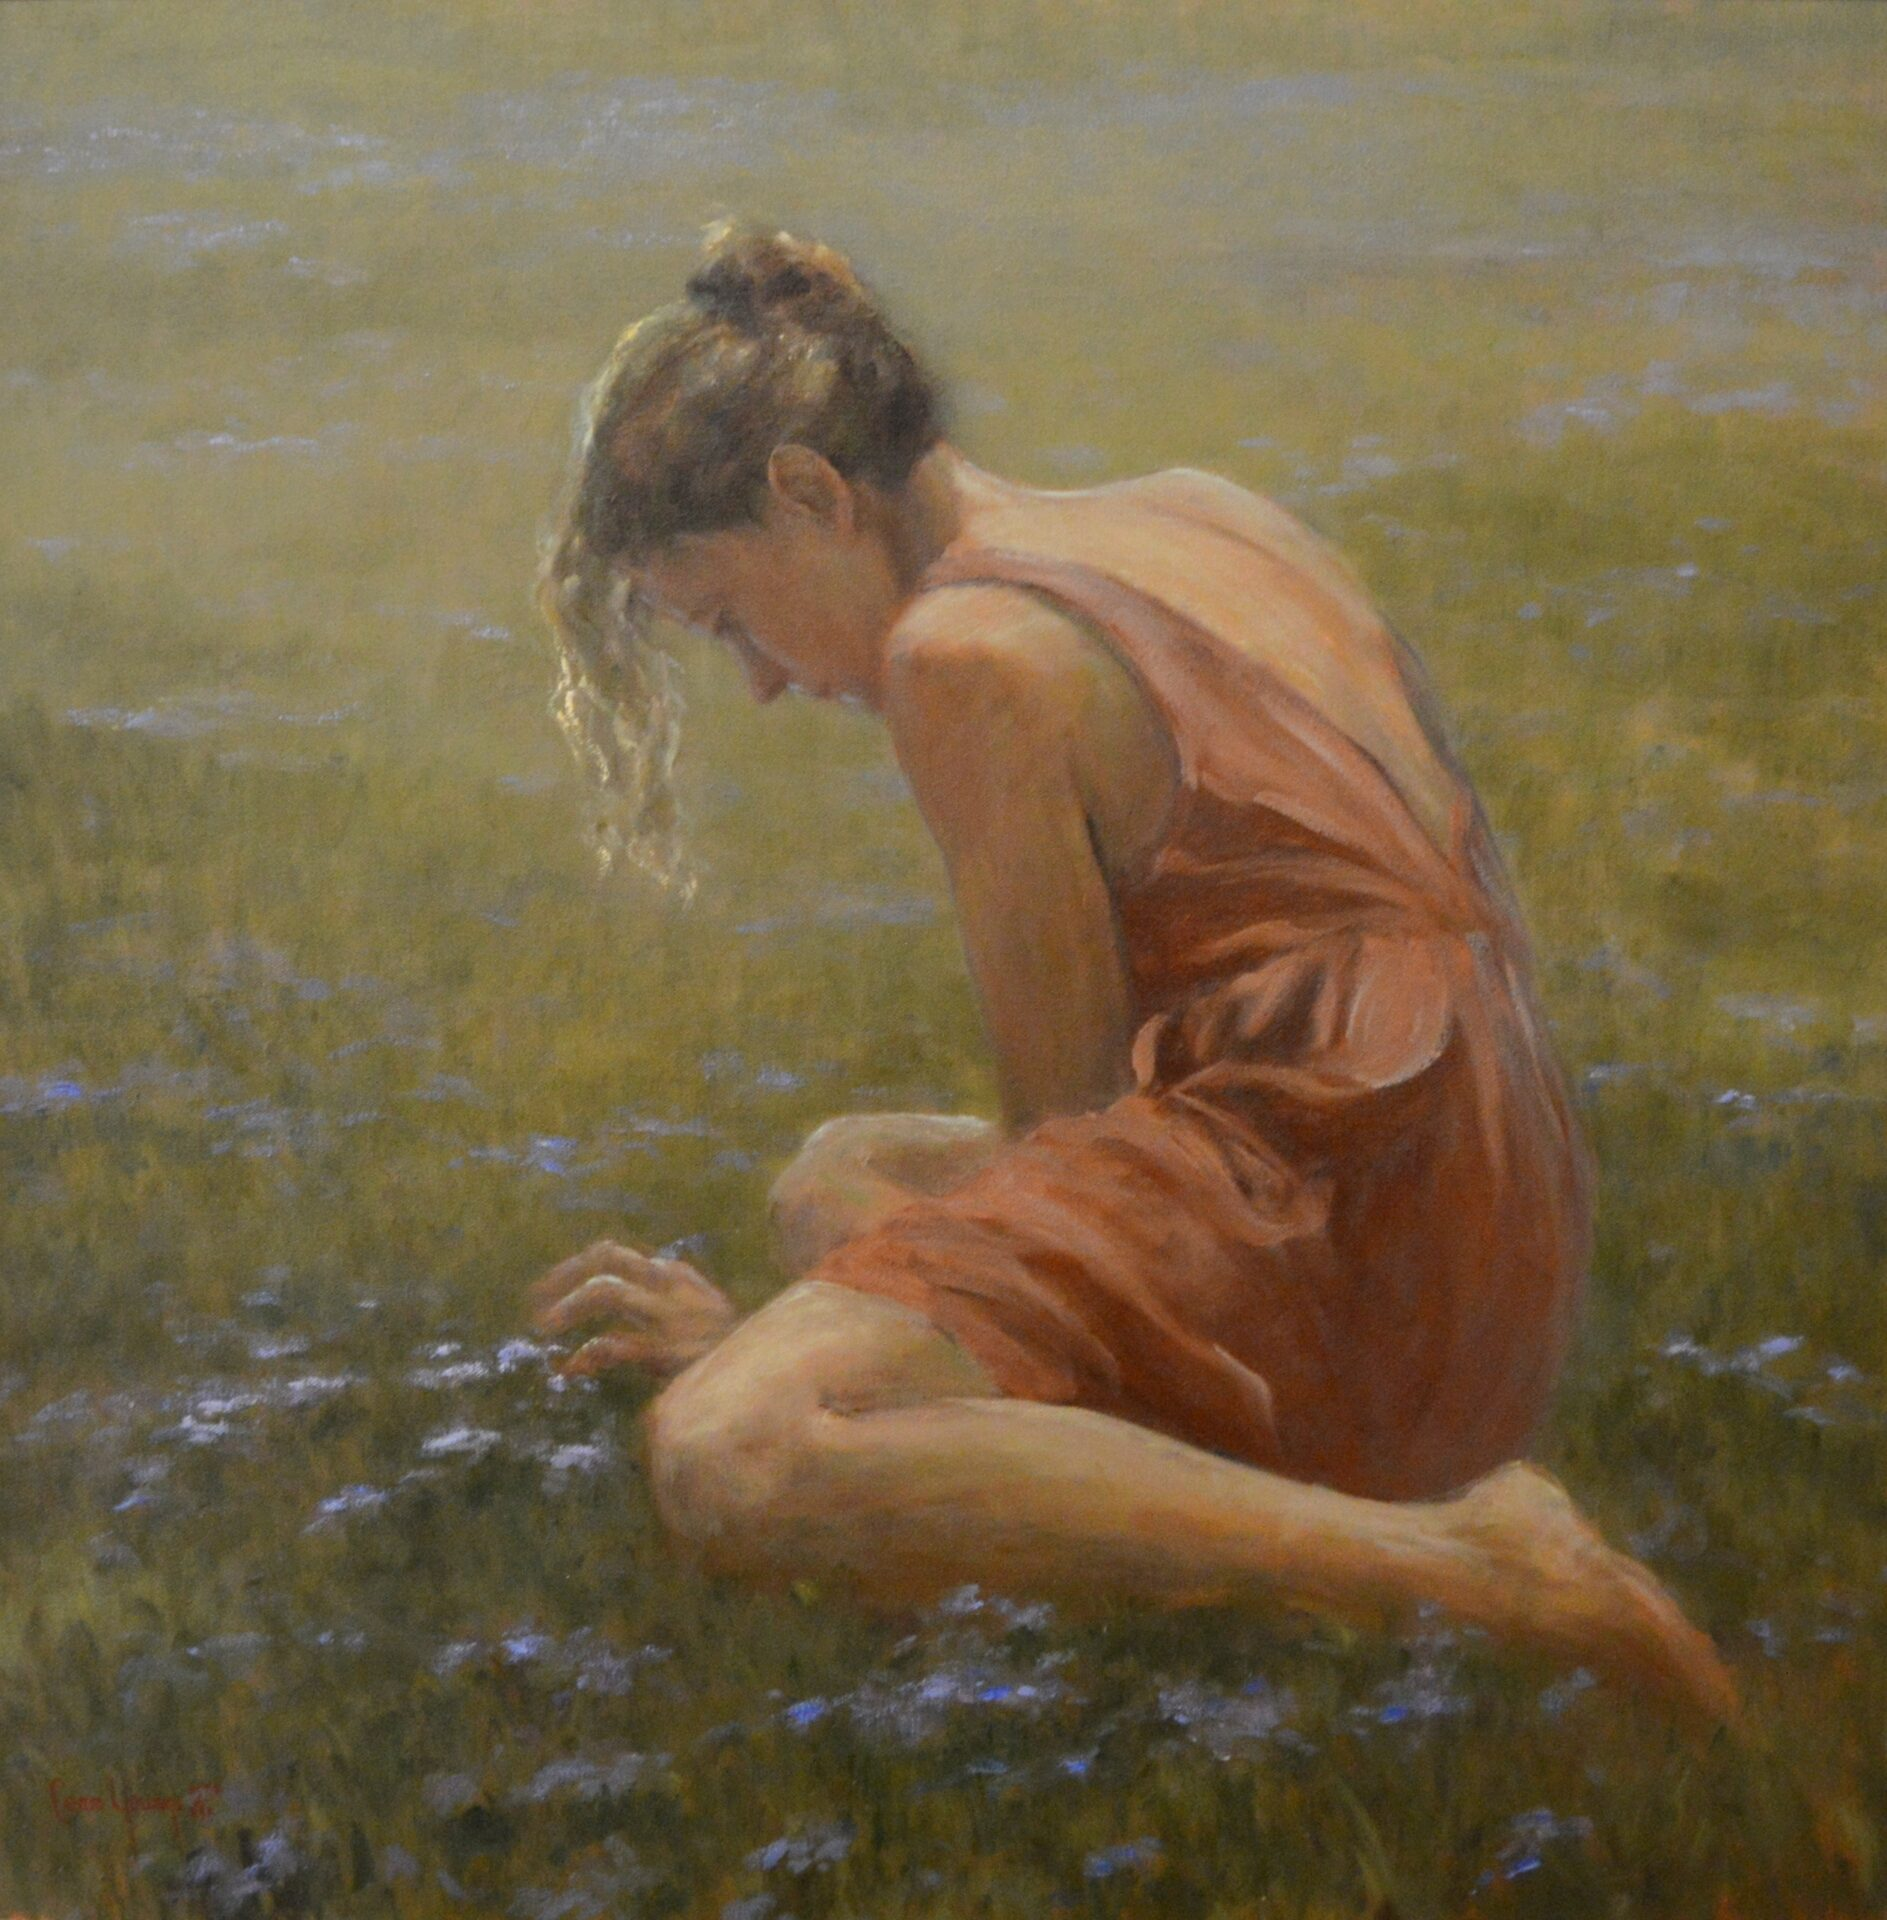 Shirley Cean Youngs - Among the Violets